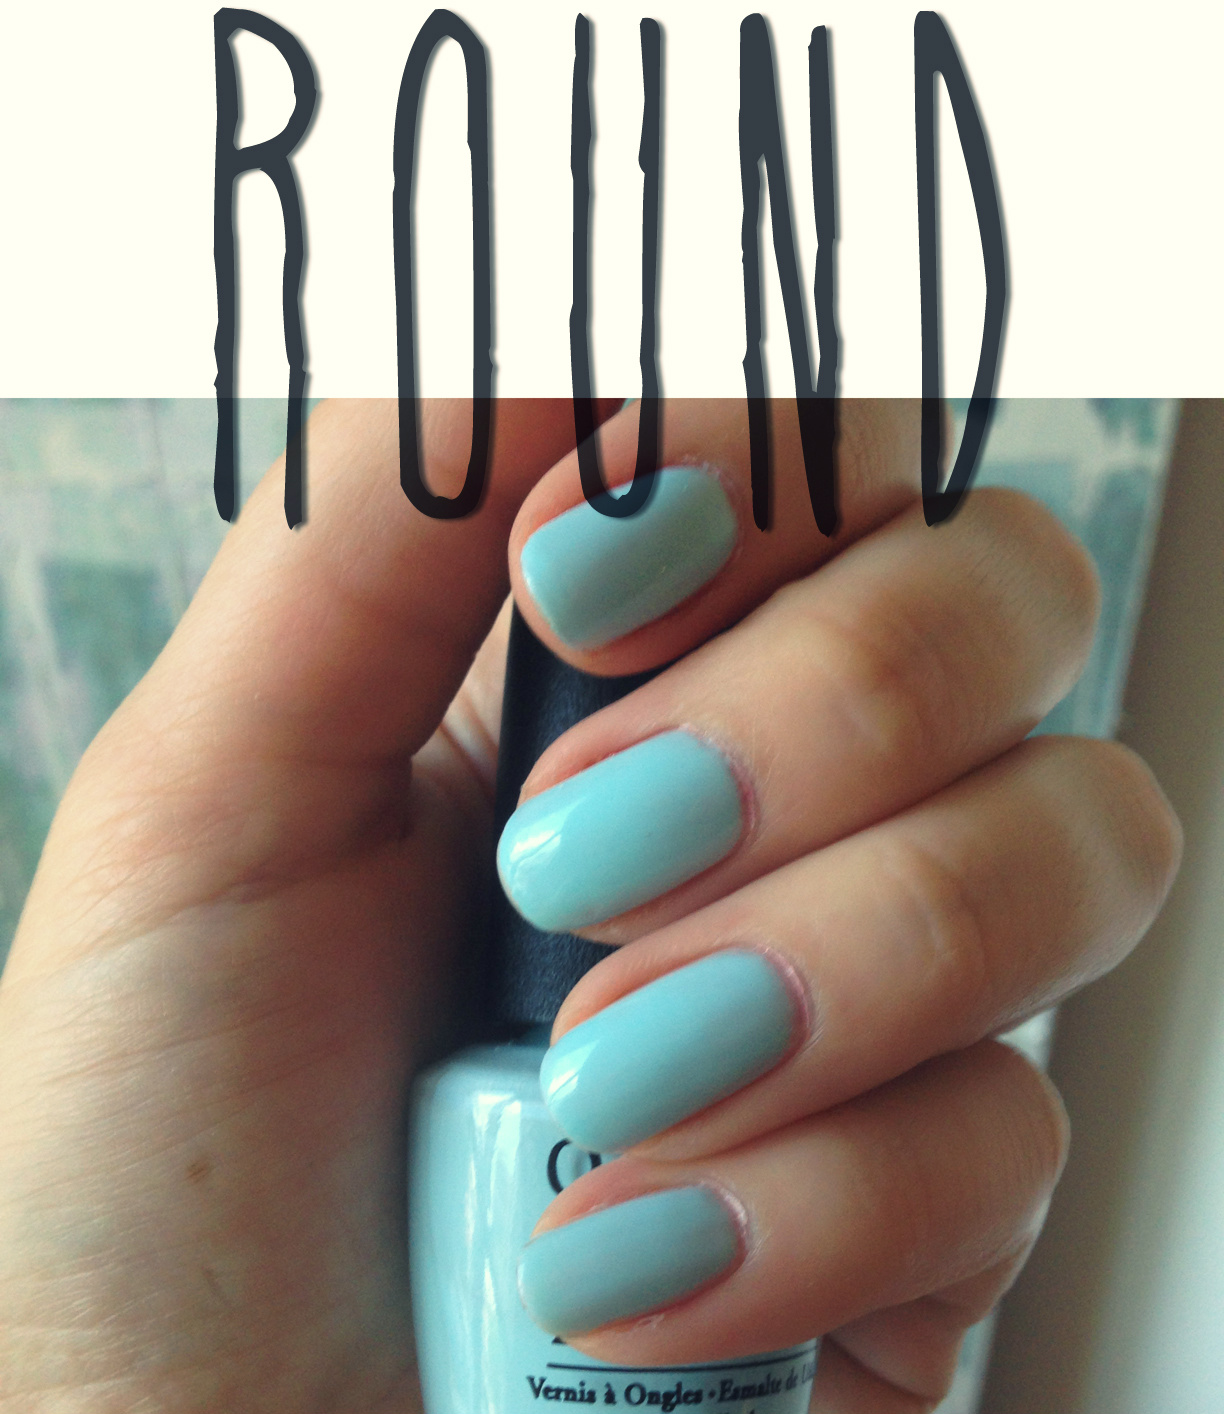 Embracing Round Nails Quinnfacemakeup Beauty Tips Tricks Tutorials Reviews